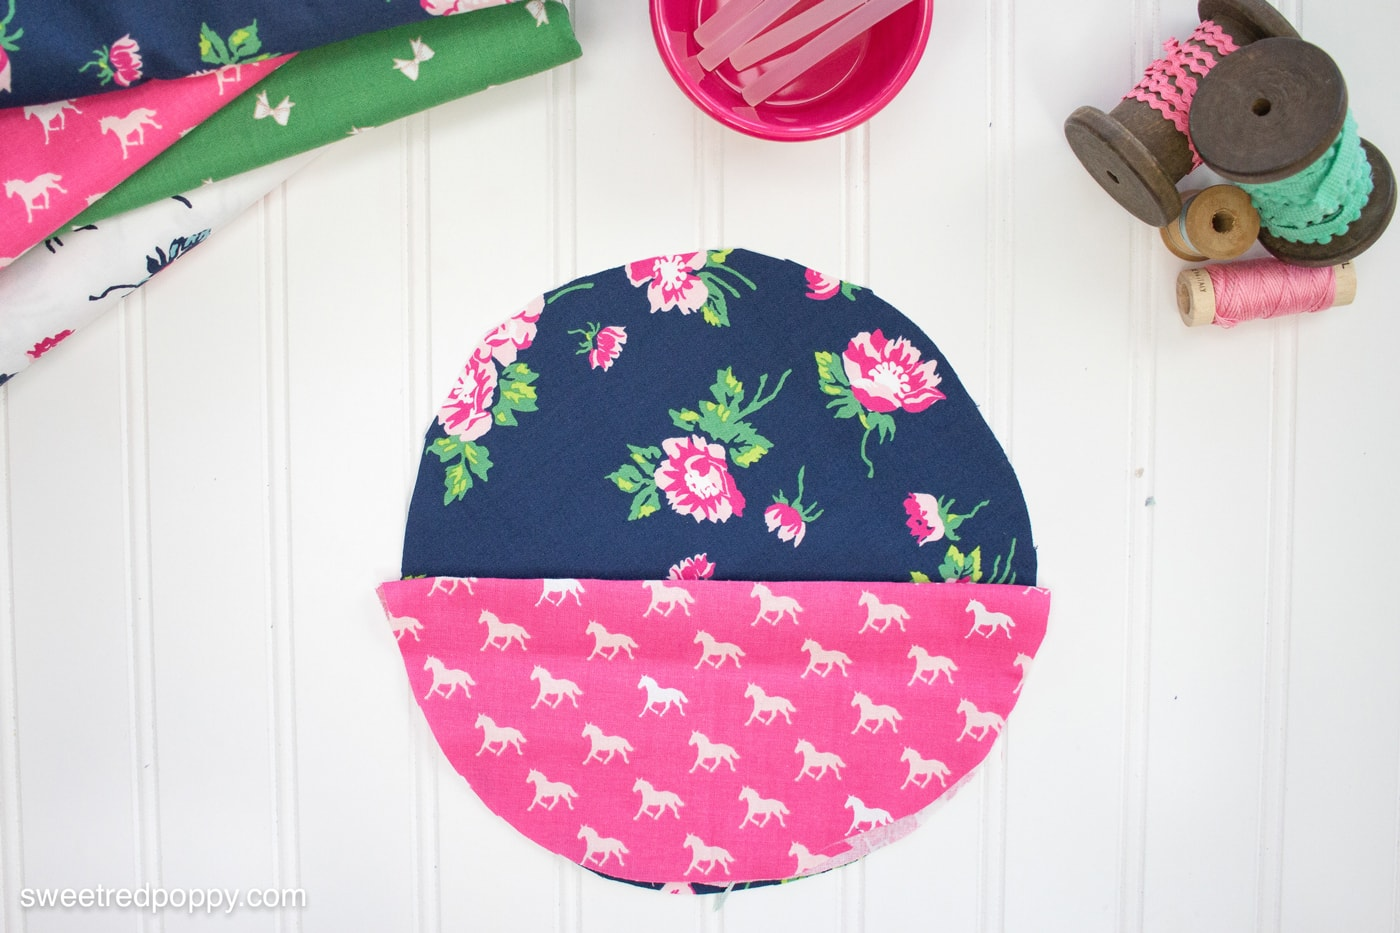 How to make an embroidery hoop hanging wall organizer